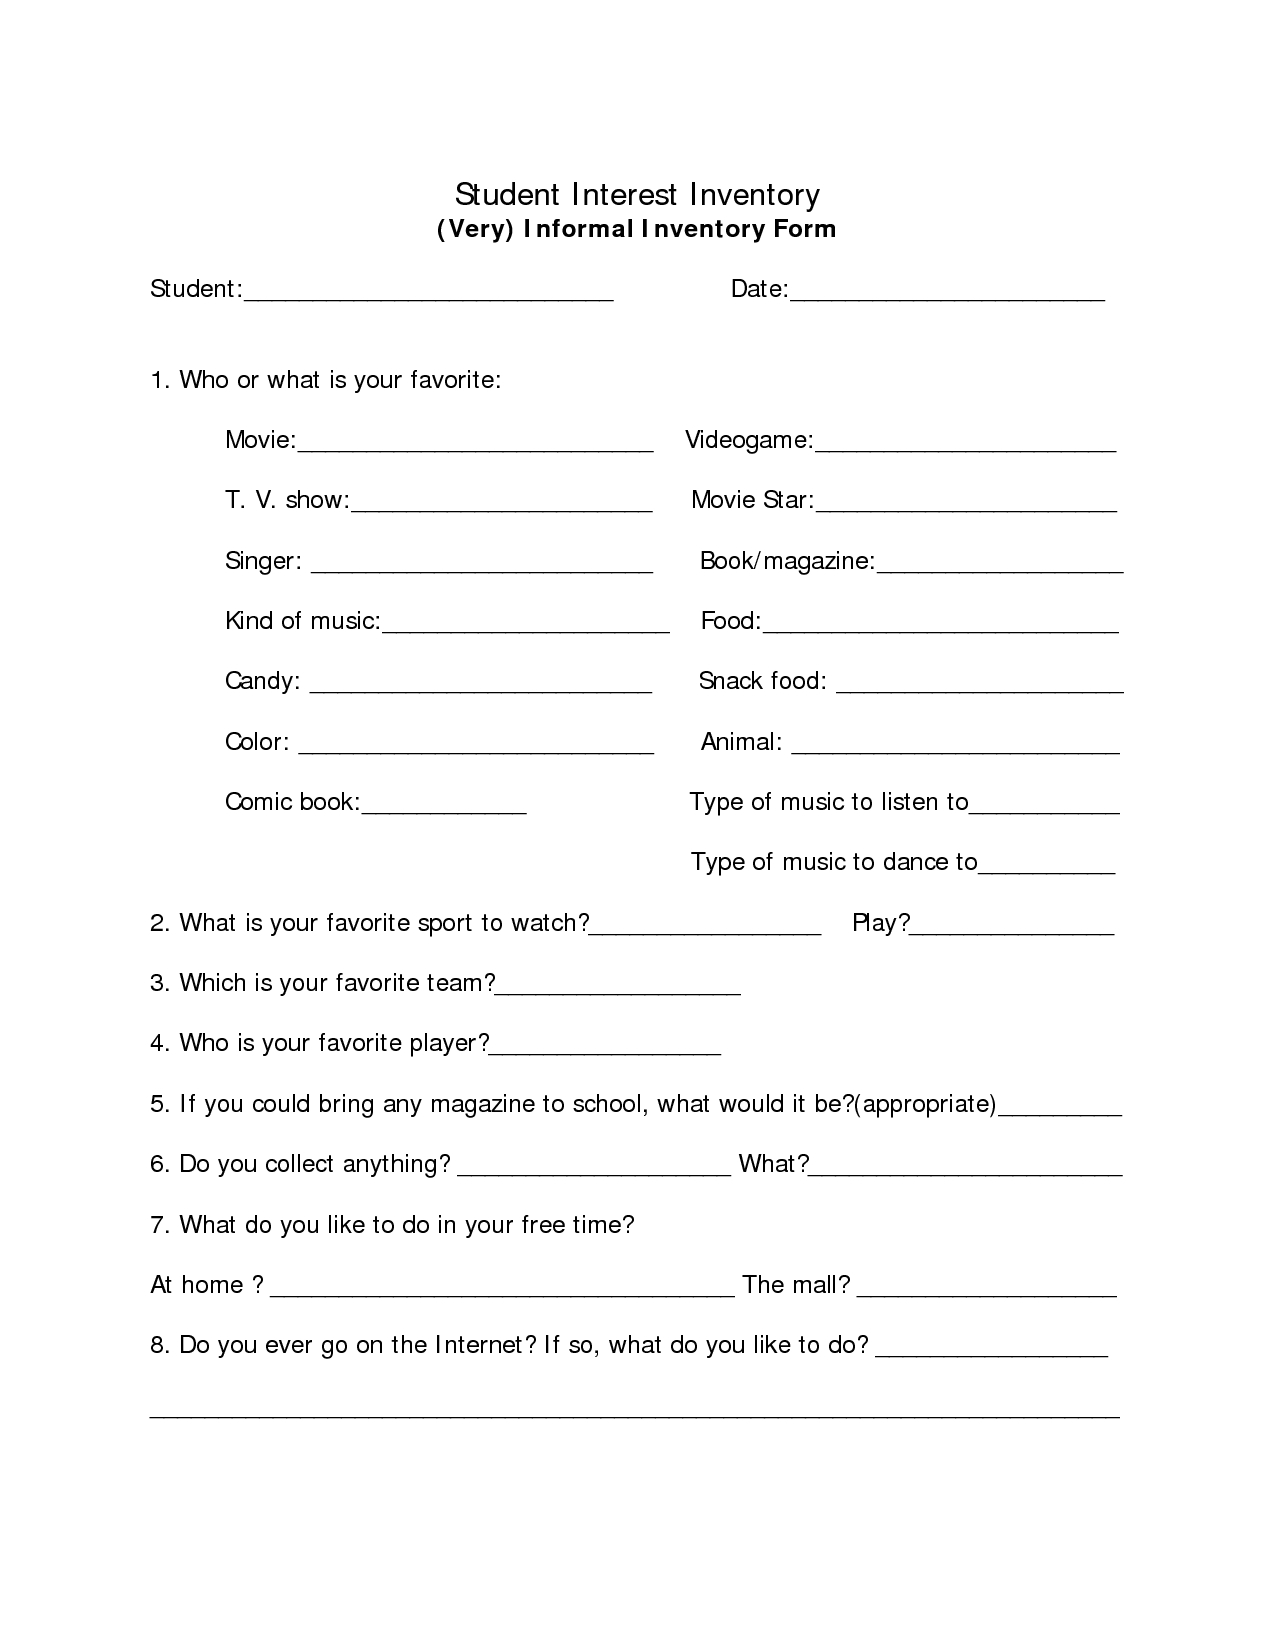 An Informal Student Interest Survey | Assessing Student Interest - Printable Career Interest Survey For High School Students Free